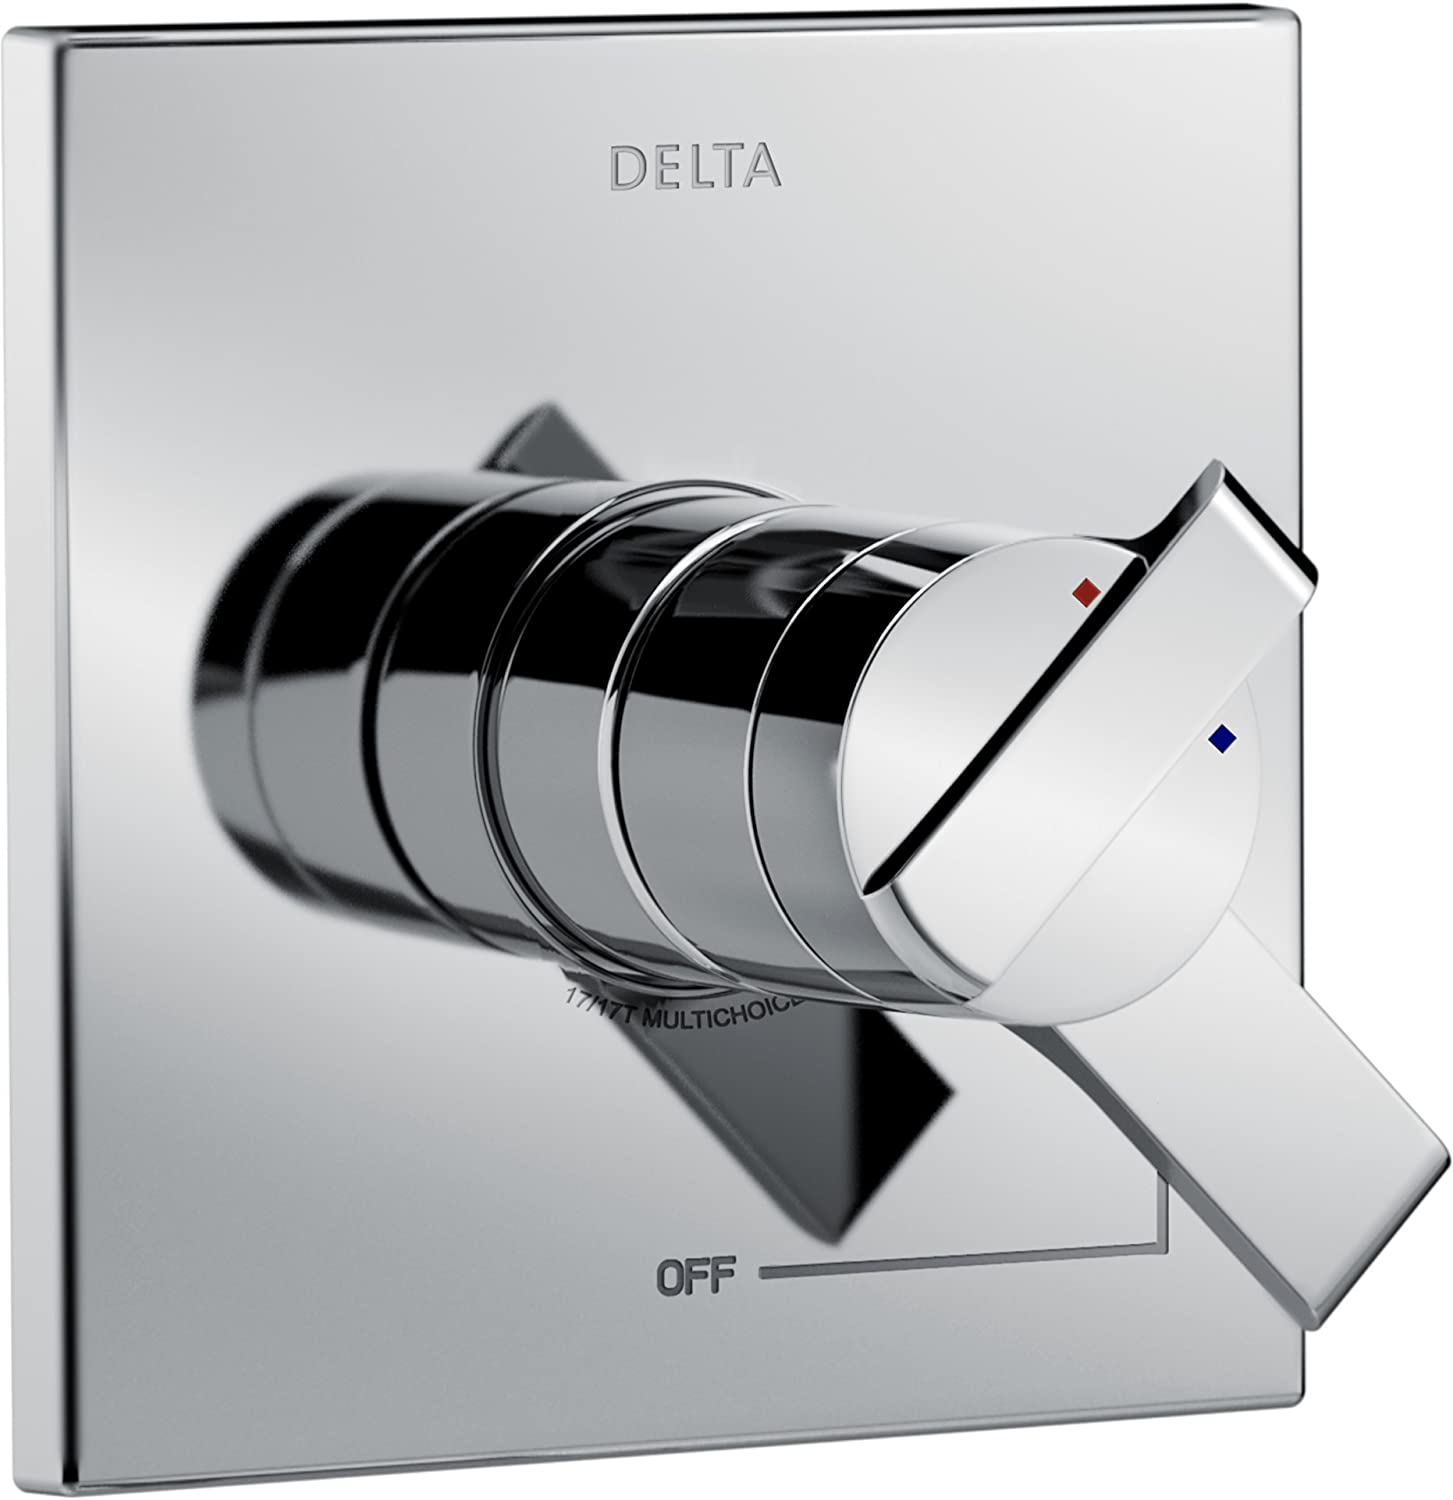 Delta Faucet Ara 17 Series Dual-Function Shower Handle Valve Trim Kit, Chrome T17067 (Valve Not Included)